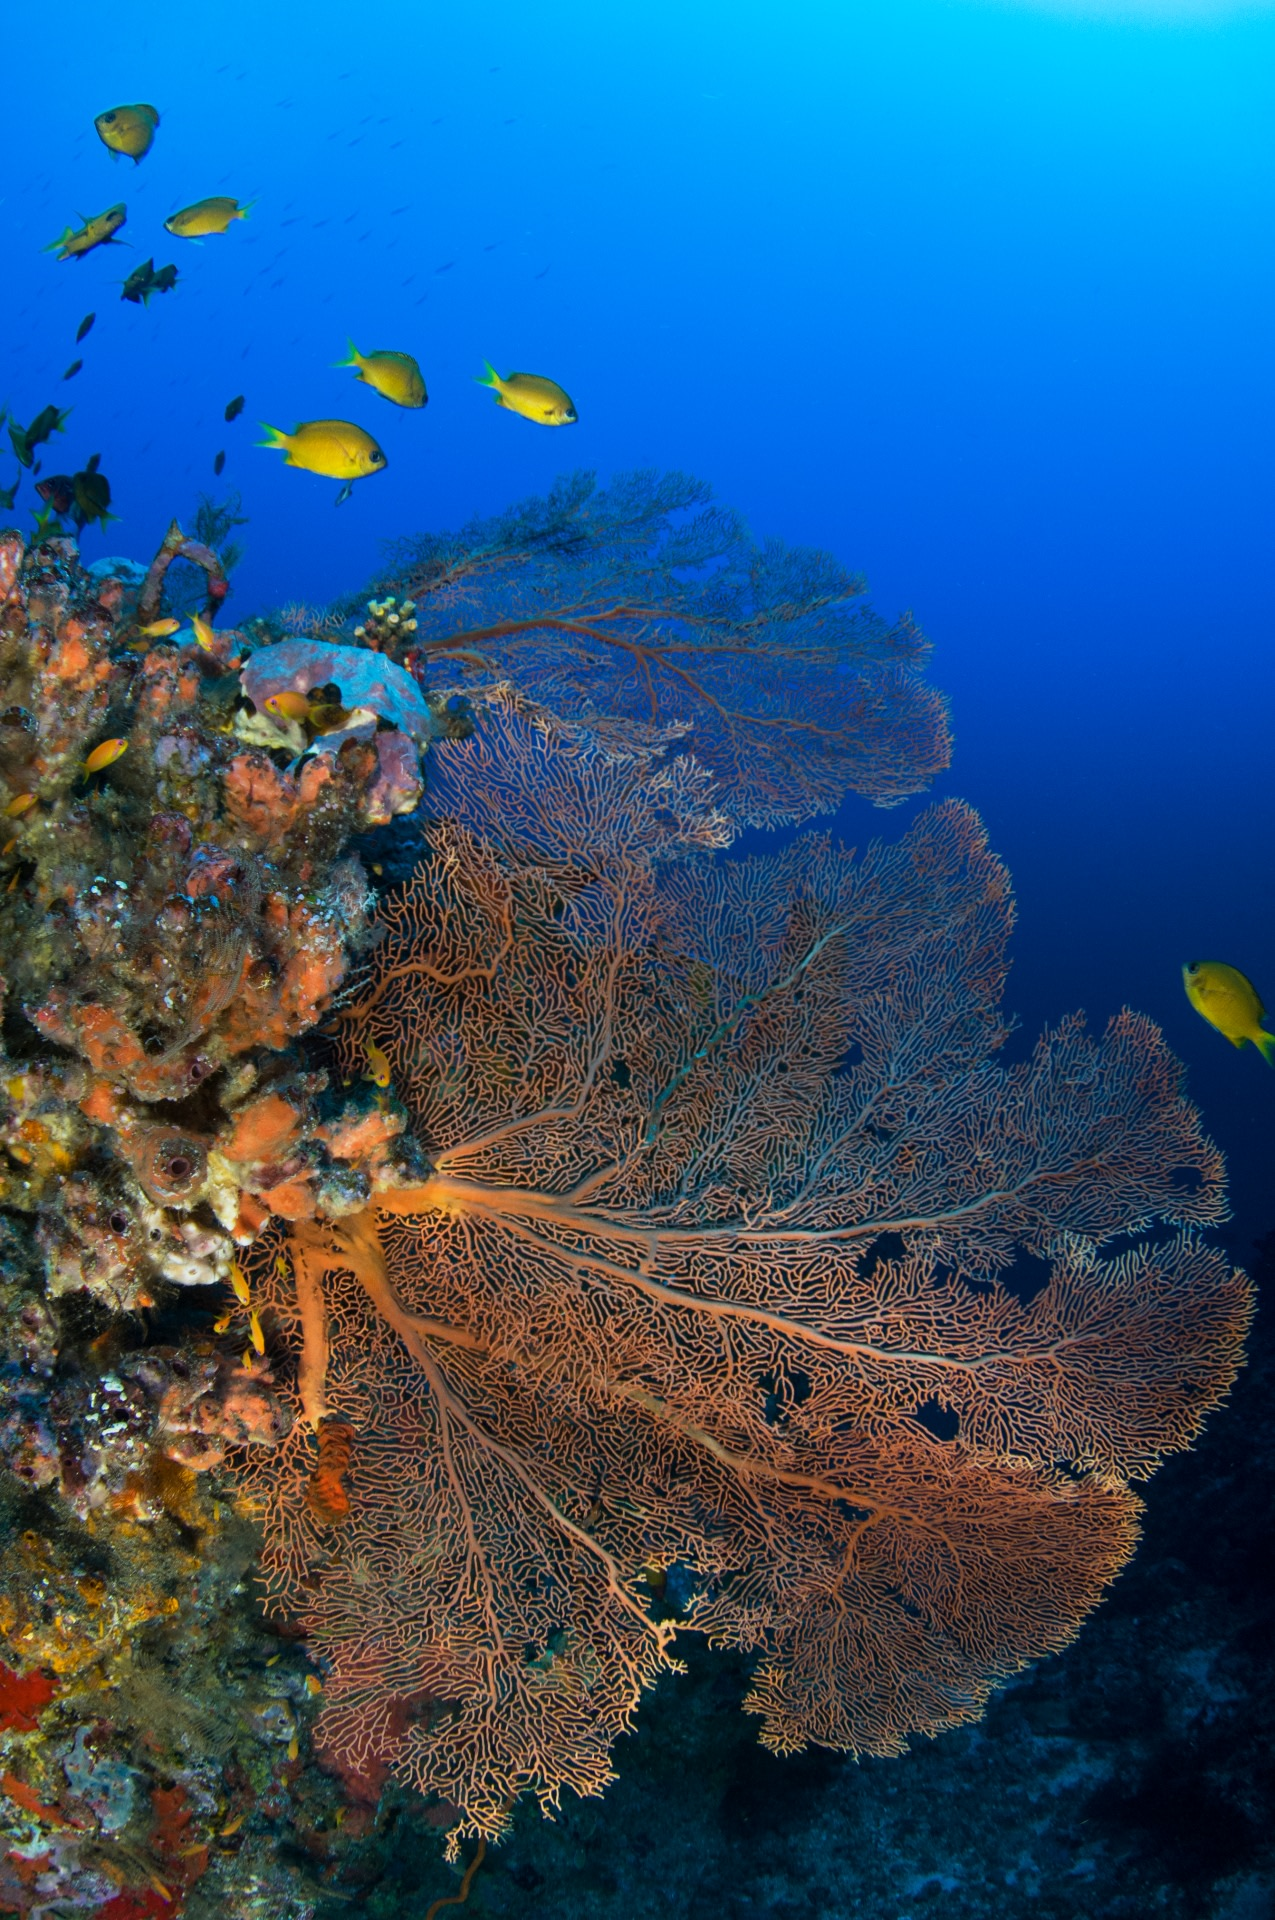 A sea fan grows off a rocky wall in a direction perpendicular to the dominant currents, maximising plankton intake while withstanding the force of the water movement. Photo: Umeed Mistry